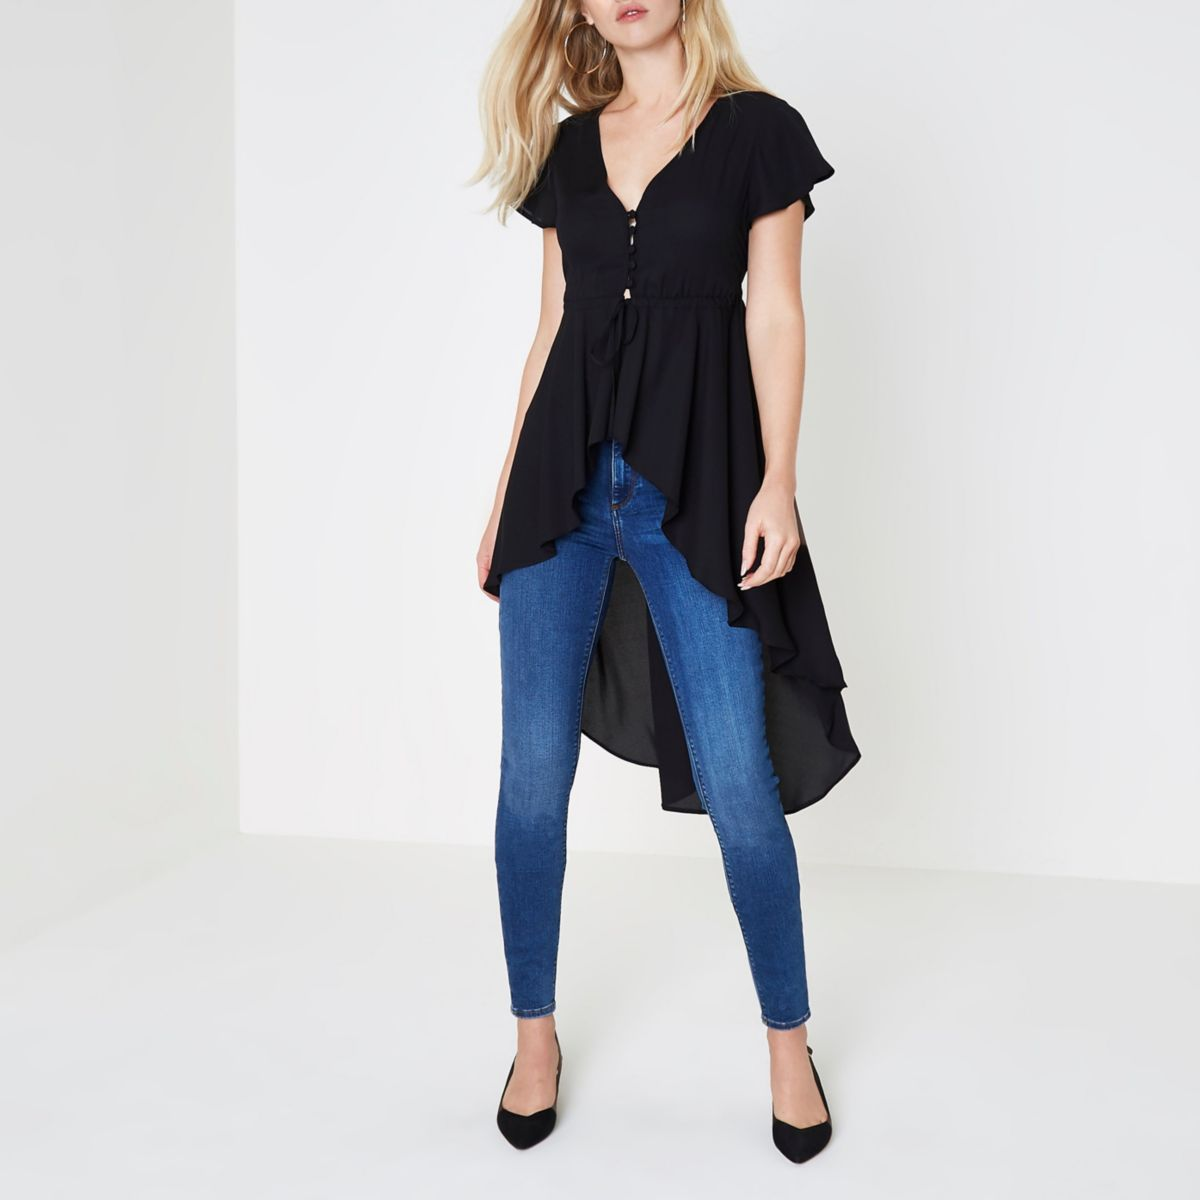 Black short sleeve high-low ruffle hem kimono